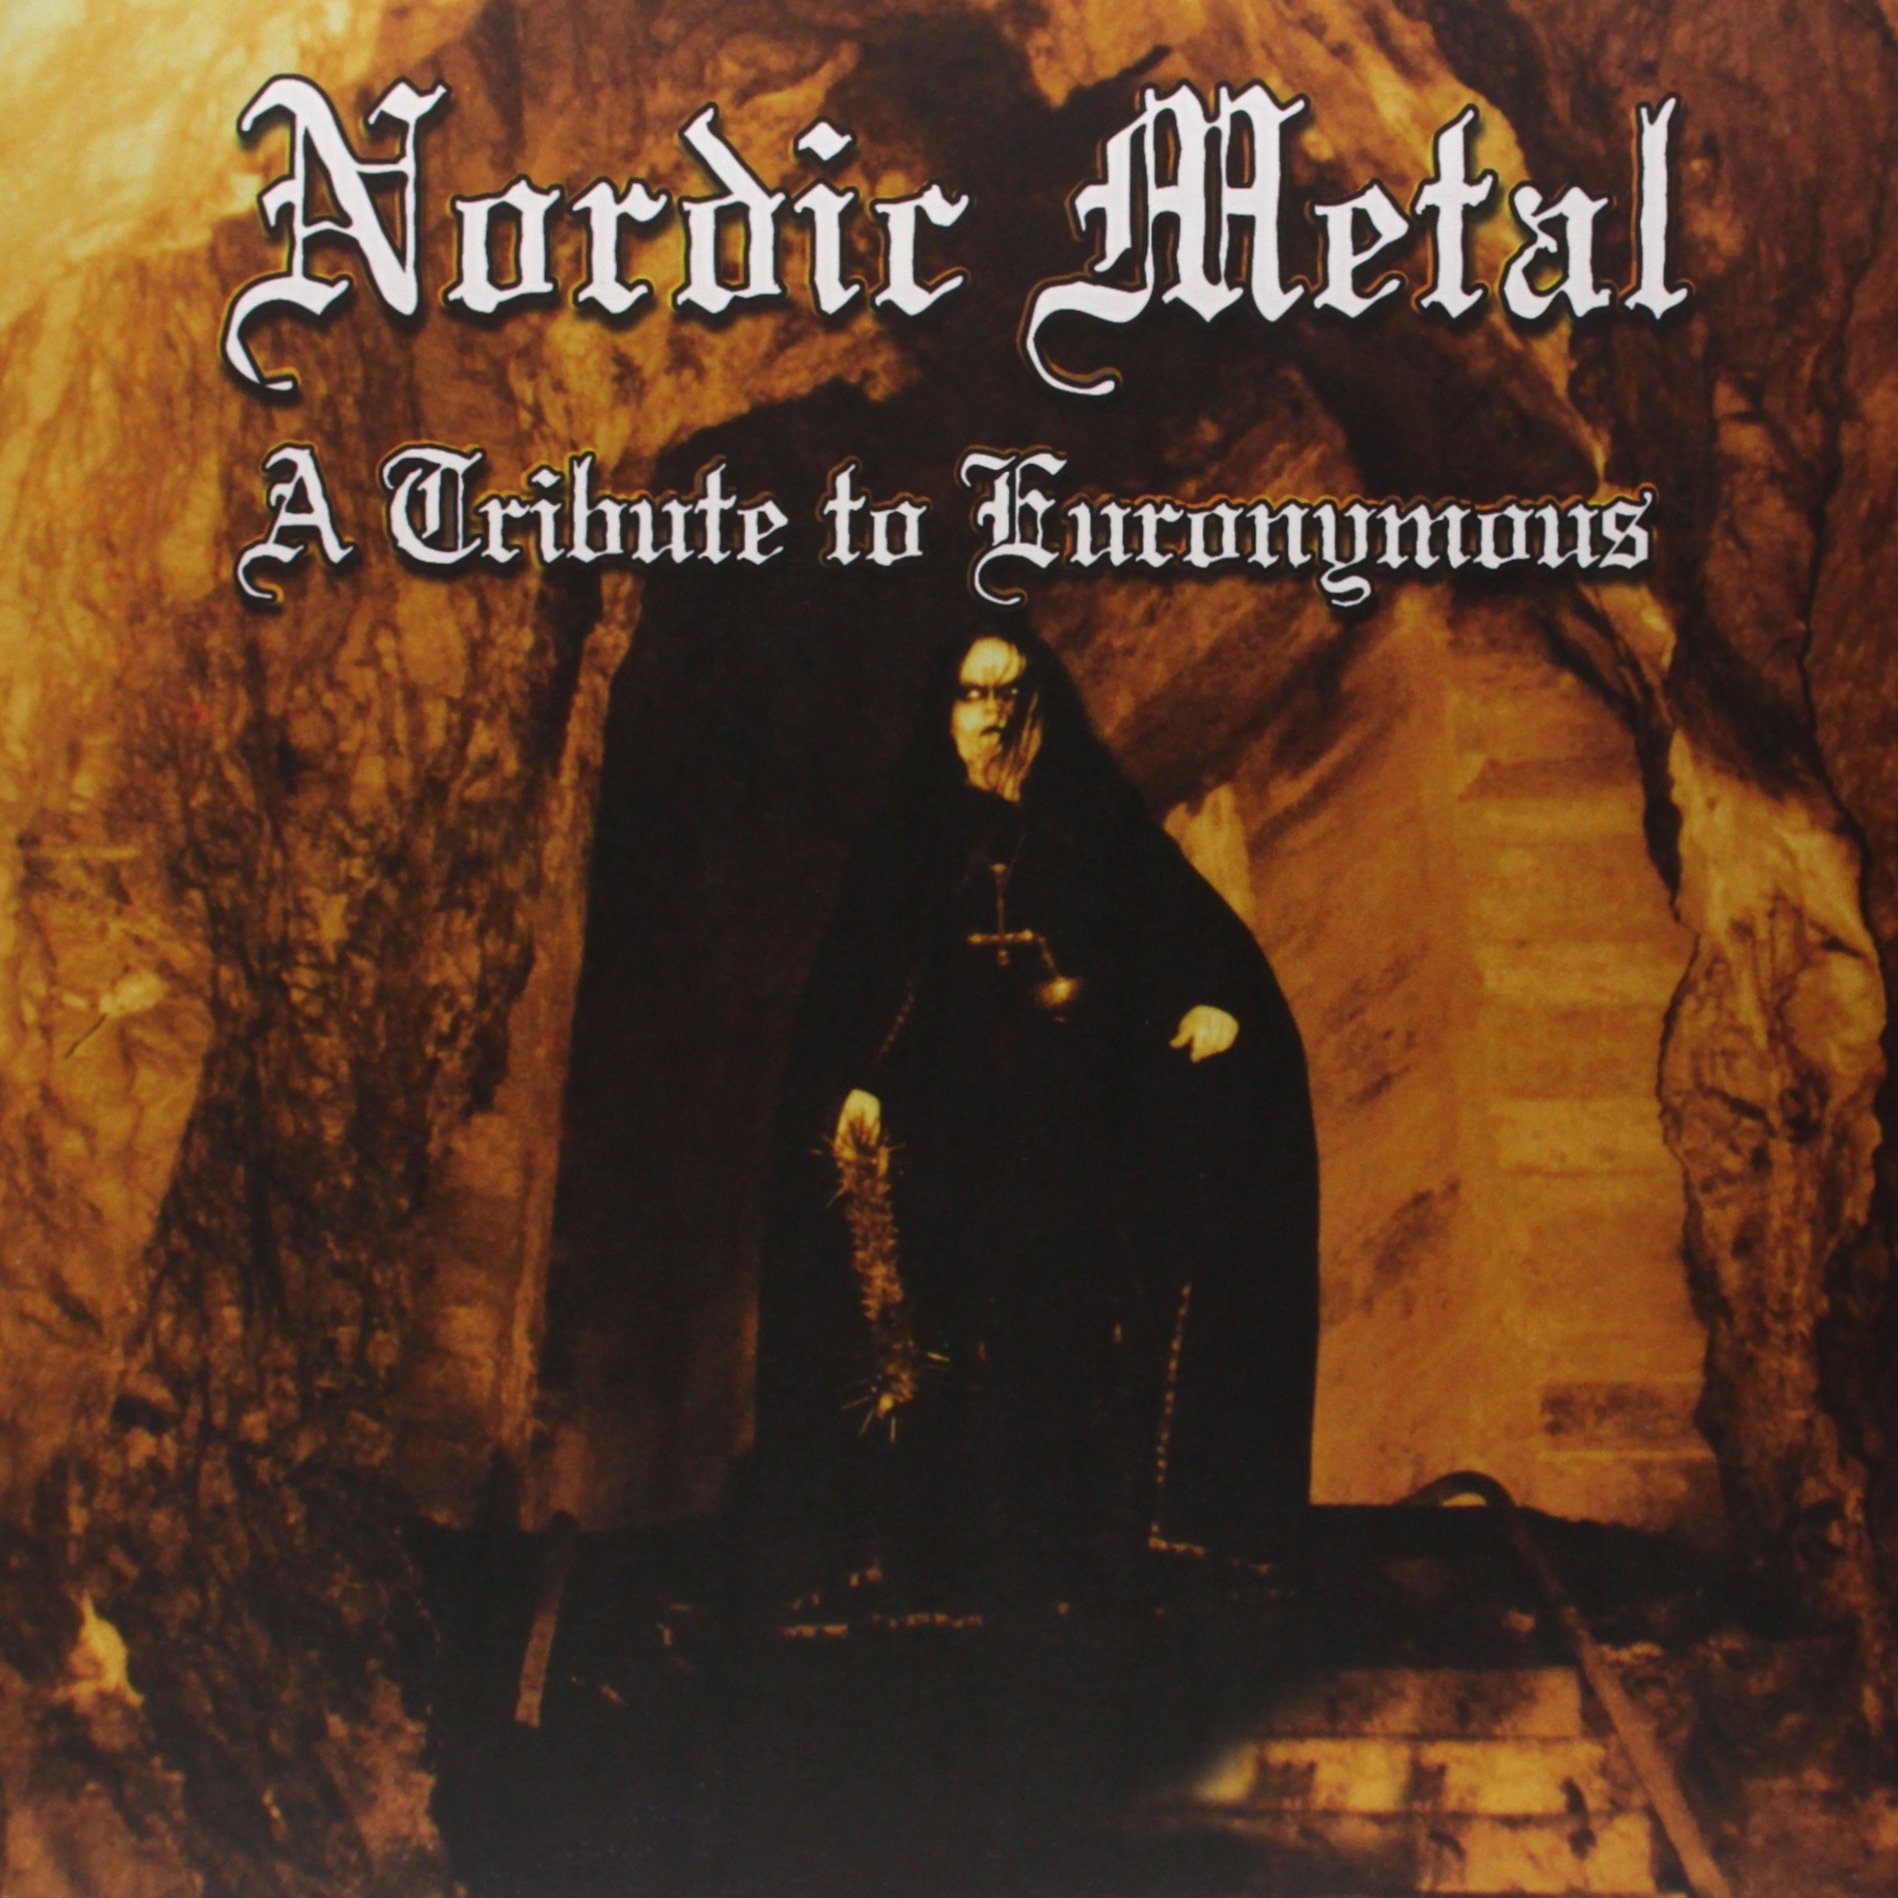 Nordic Metal: Tribute to Euronymous